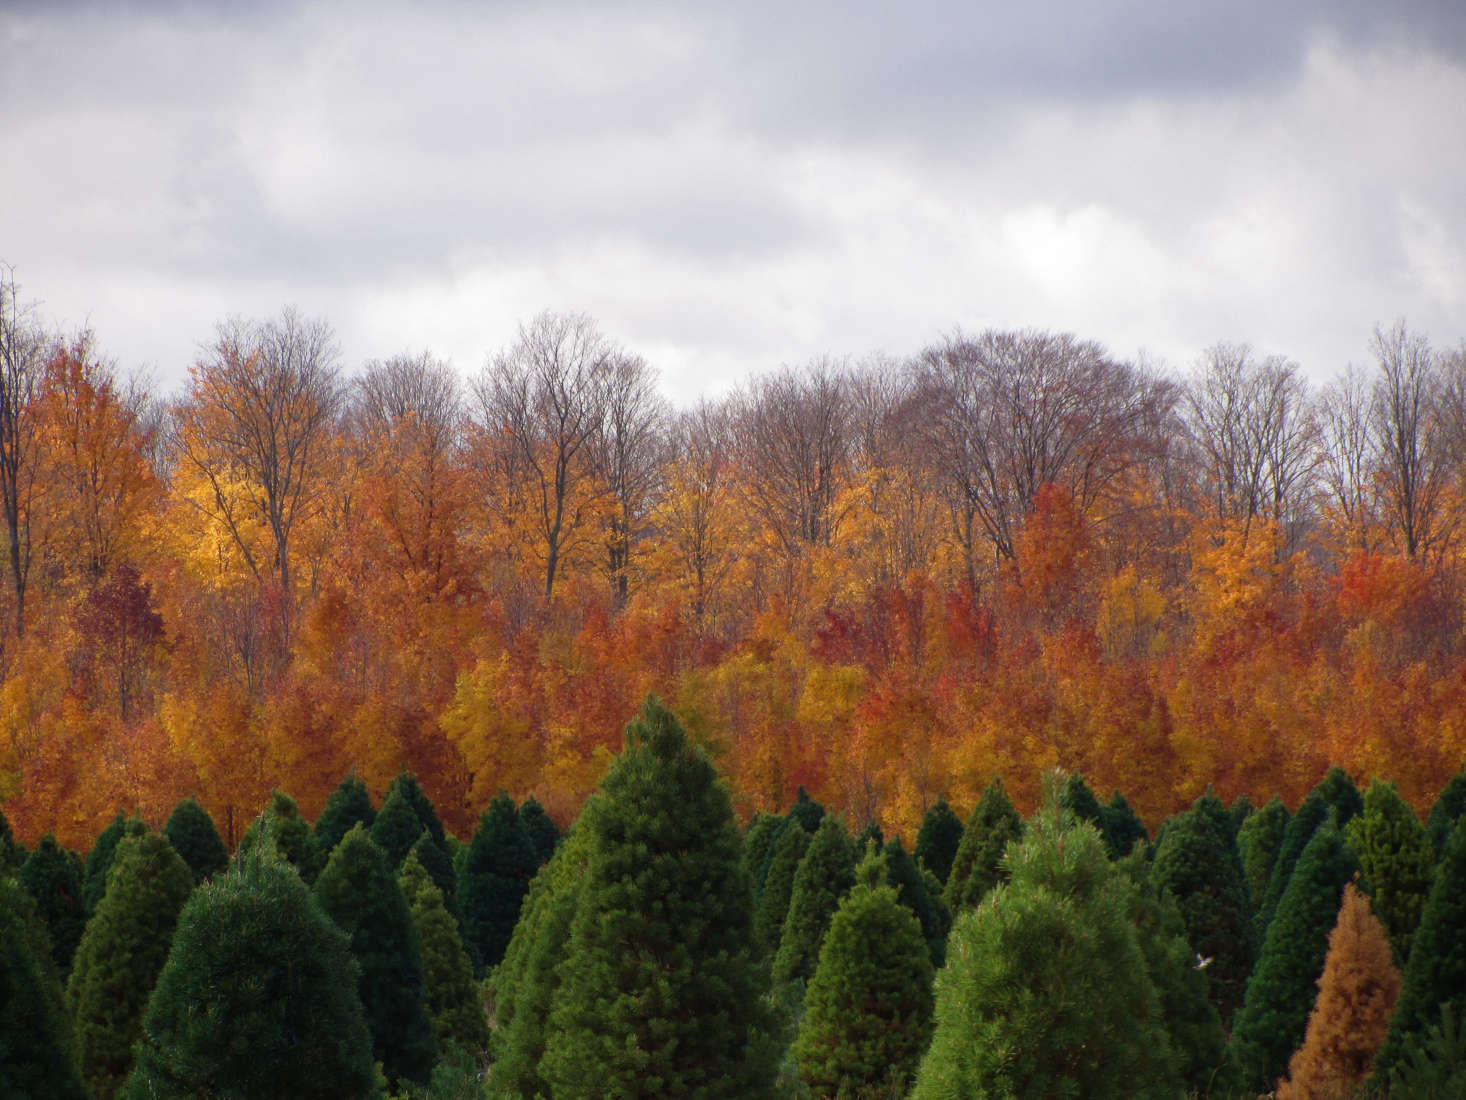 A Christmas tree farm in northern Michigan. Photograph by Rachel Kramer via Flickr, from Gardening src=